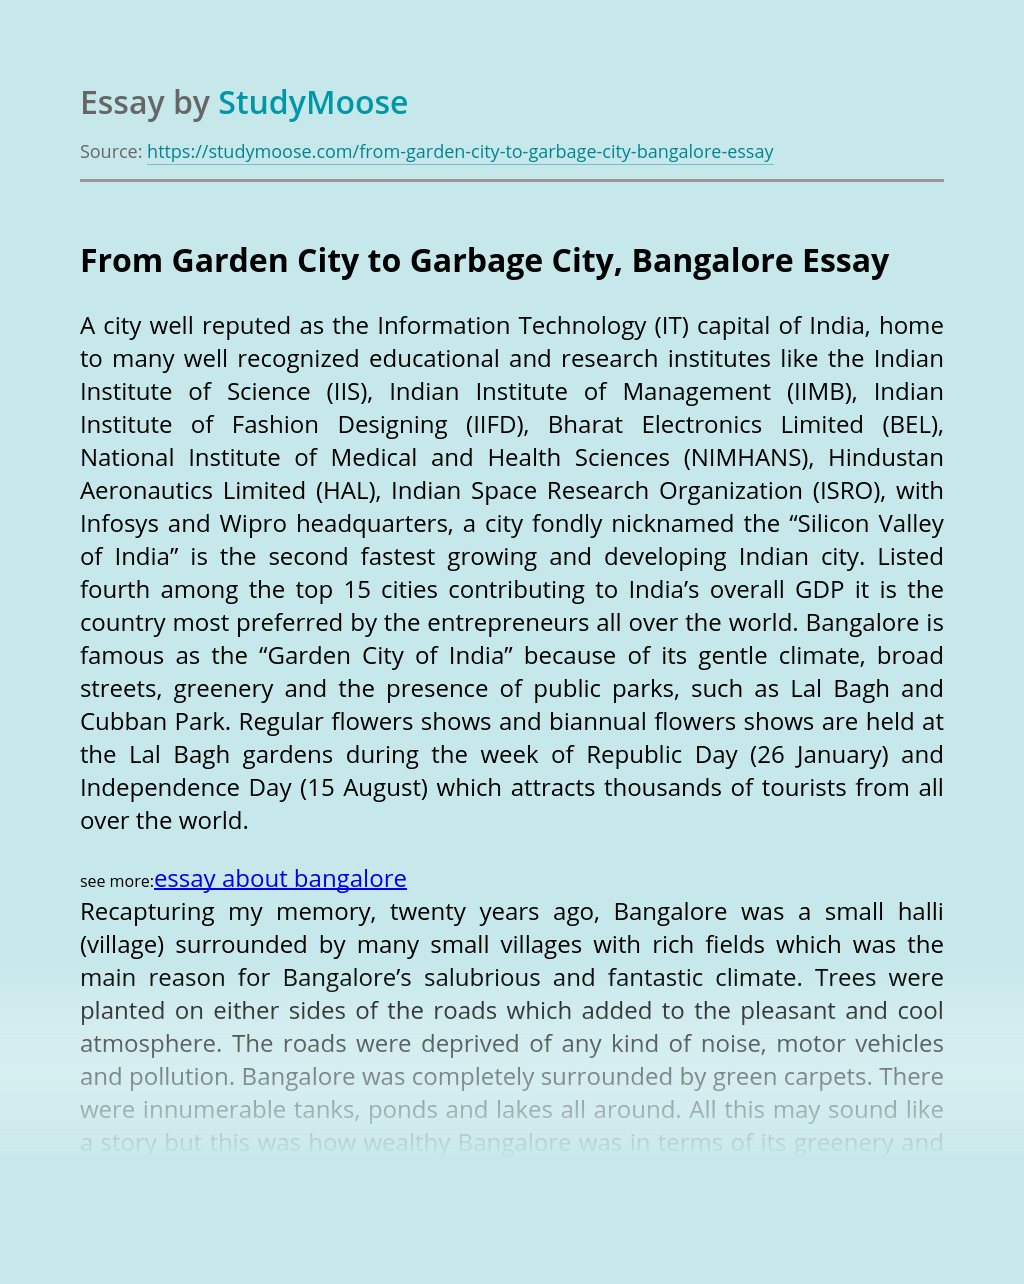 From Garden City to Garbage City, Bangalore